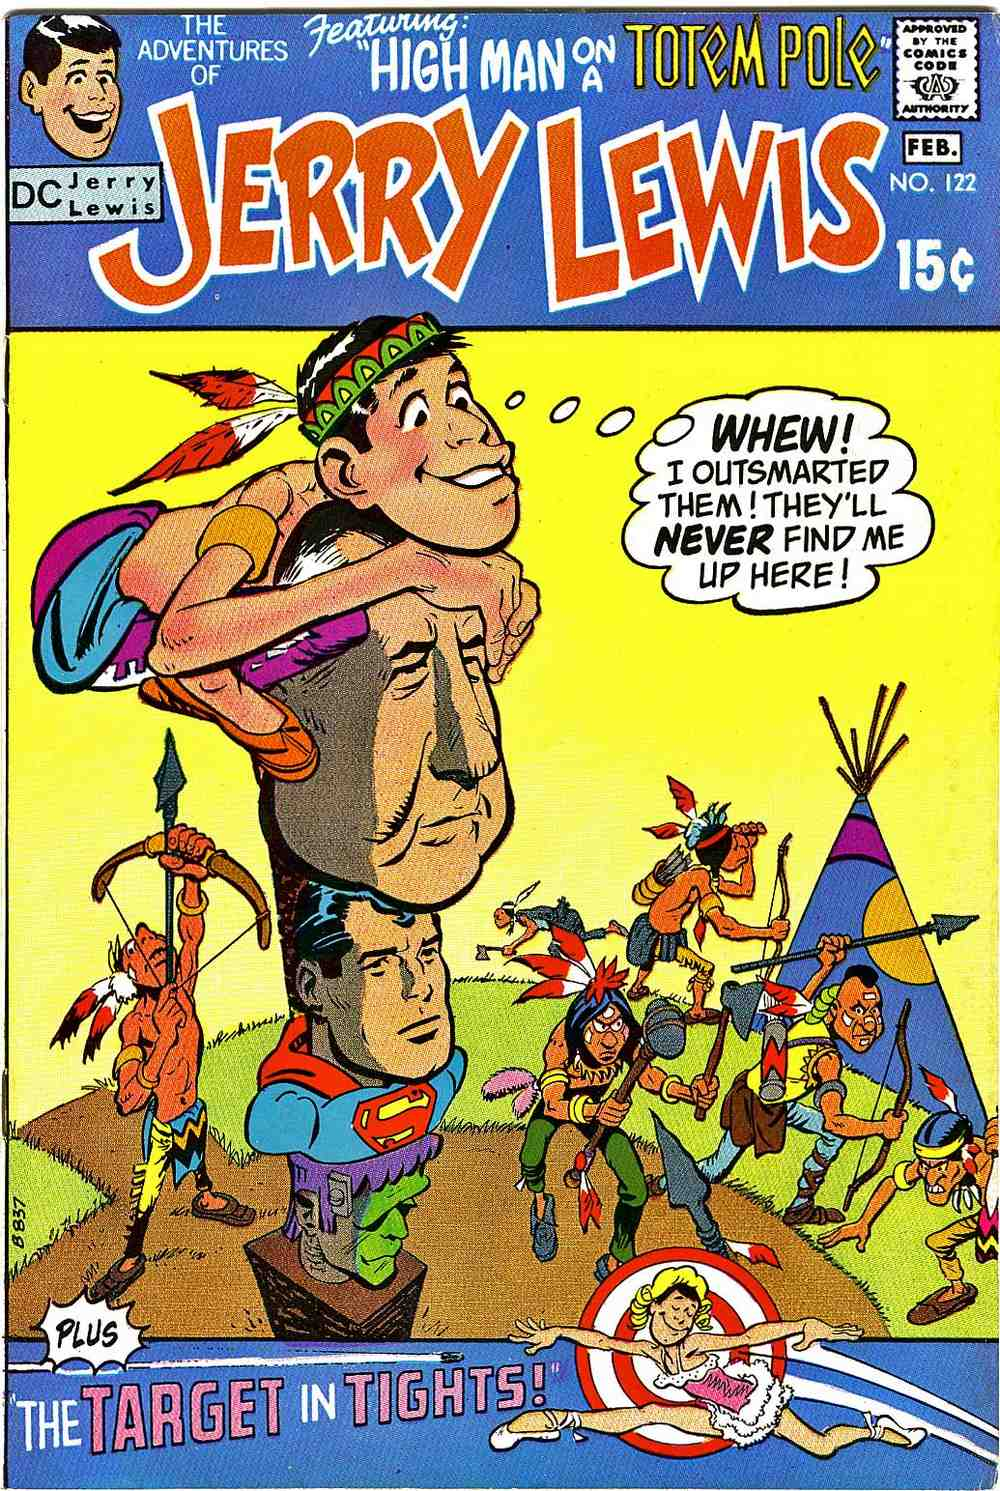 The Adventures of Jerry Lewis 122 Page 1